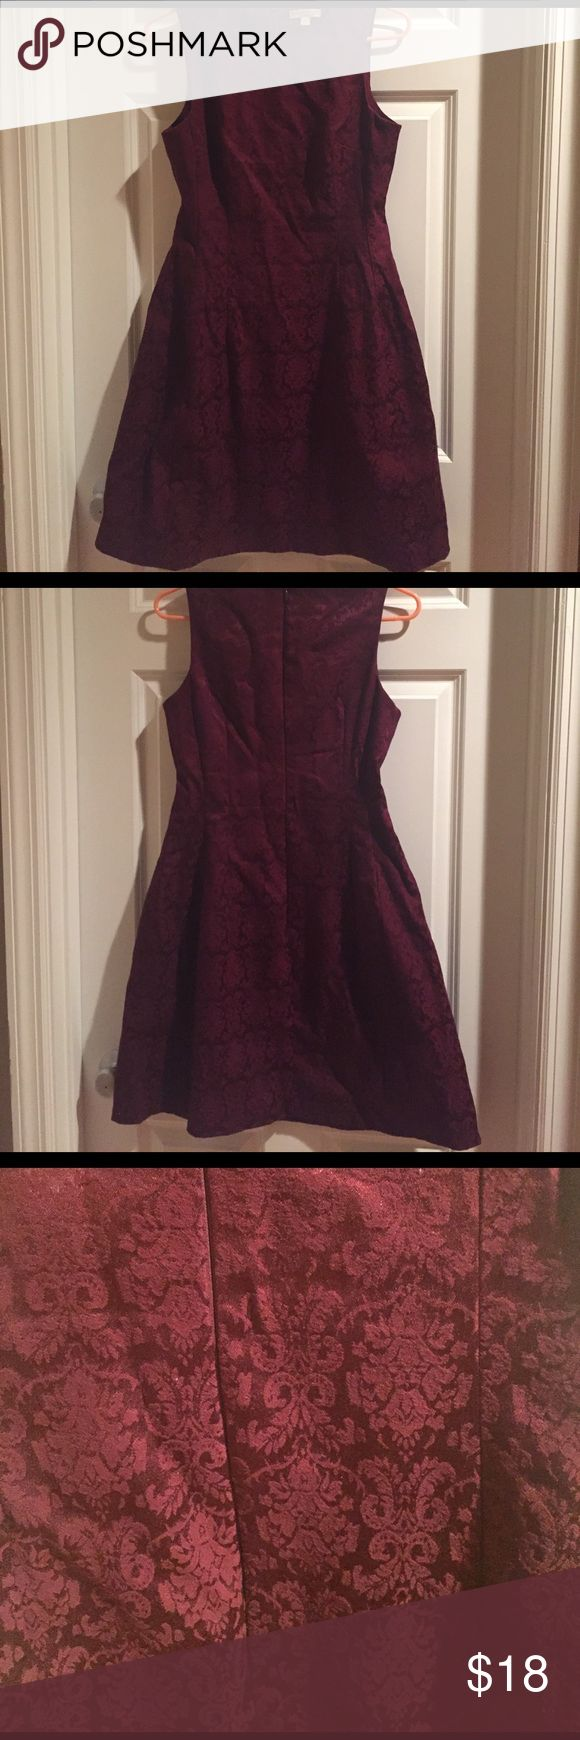 Burgundy Eves Mendes NY&C Sleeveless Dress Size 10. Burgundy jacquard Eva Mendes for New York & Company sleeveless dress. Shell - 52% cotton, 46% polyester, 2% spandex. Lining - 100% polyester. New York & Company Dresses